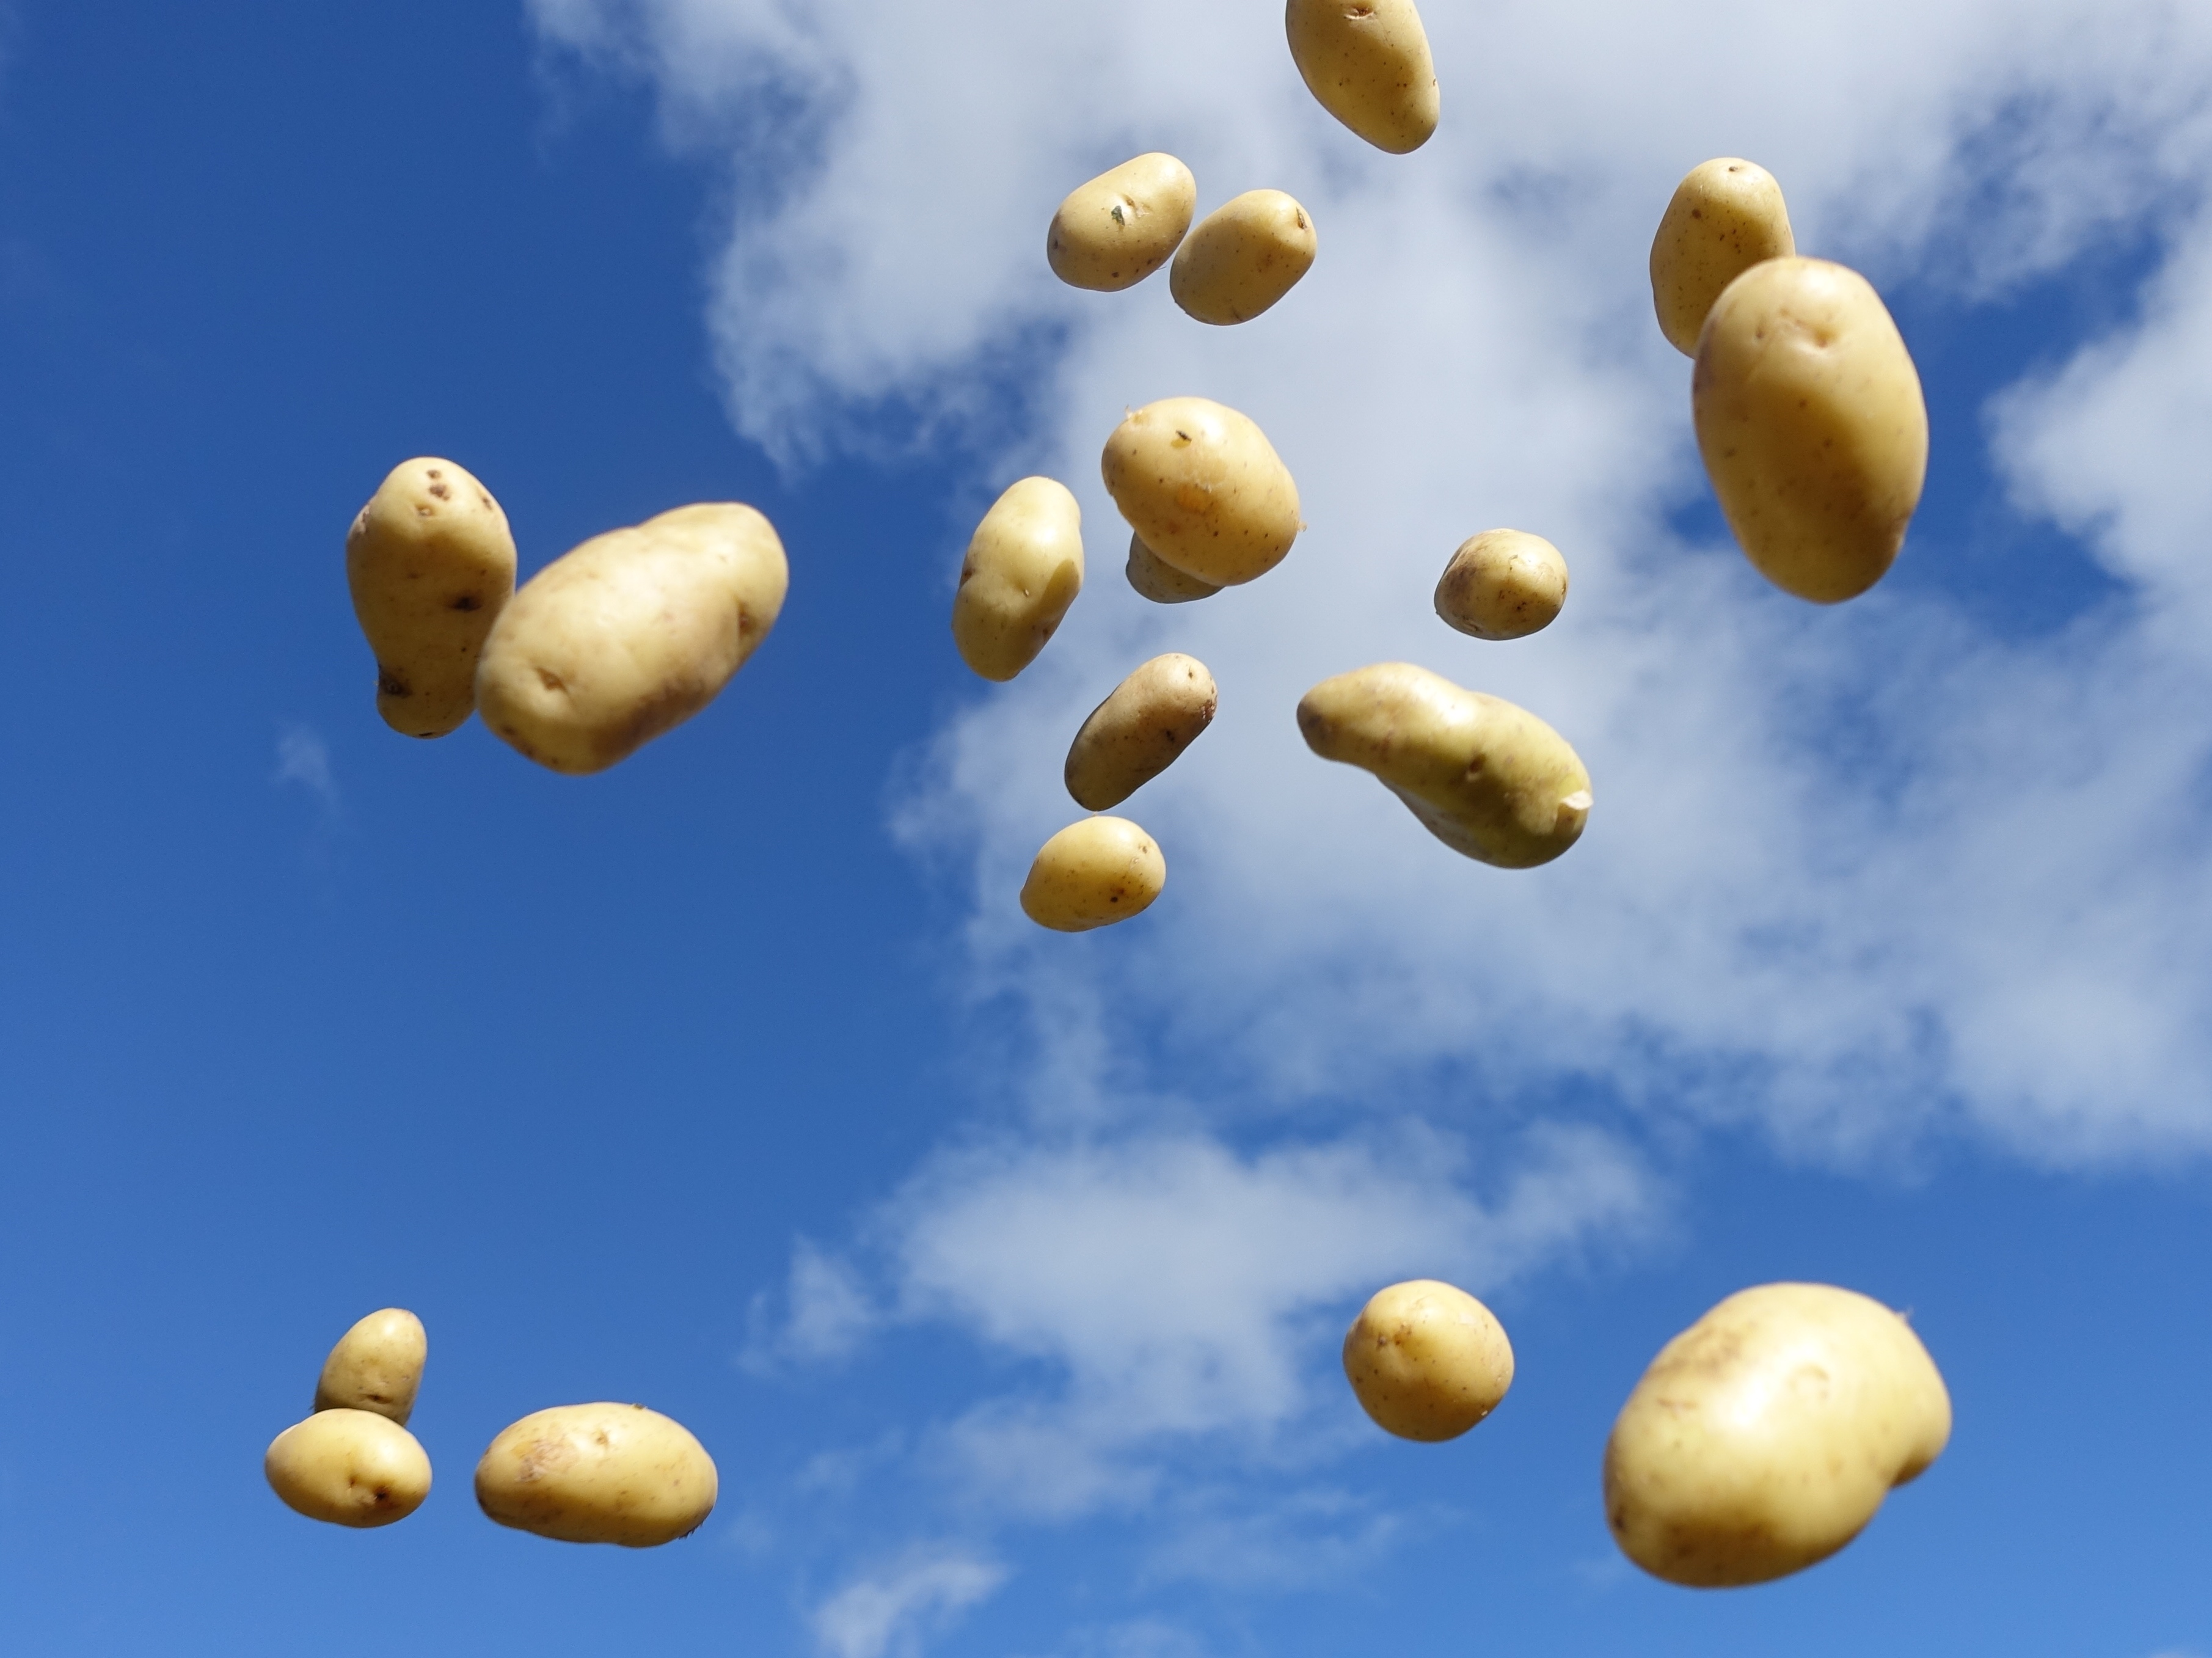 flying potatoes 2 © KIM JONKER